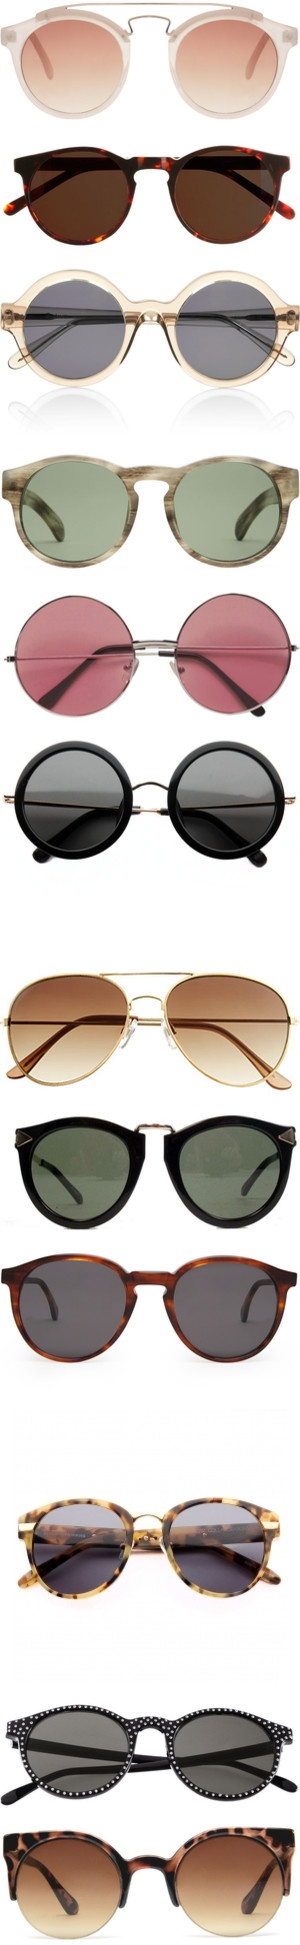 """""""sunglasses"""" by sixtwenty-one ❤ liked on Polyvore OH my goodness I'm in love. <3333333"""